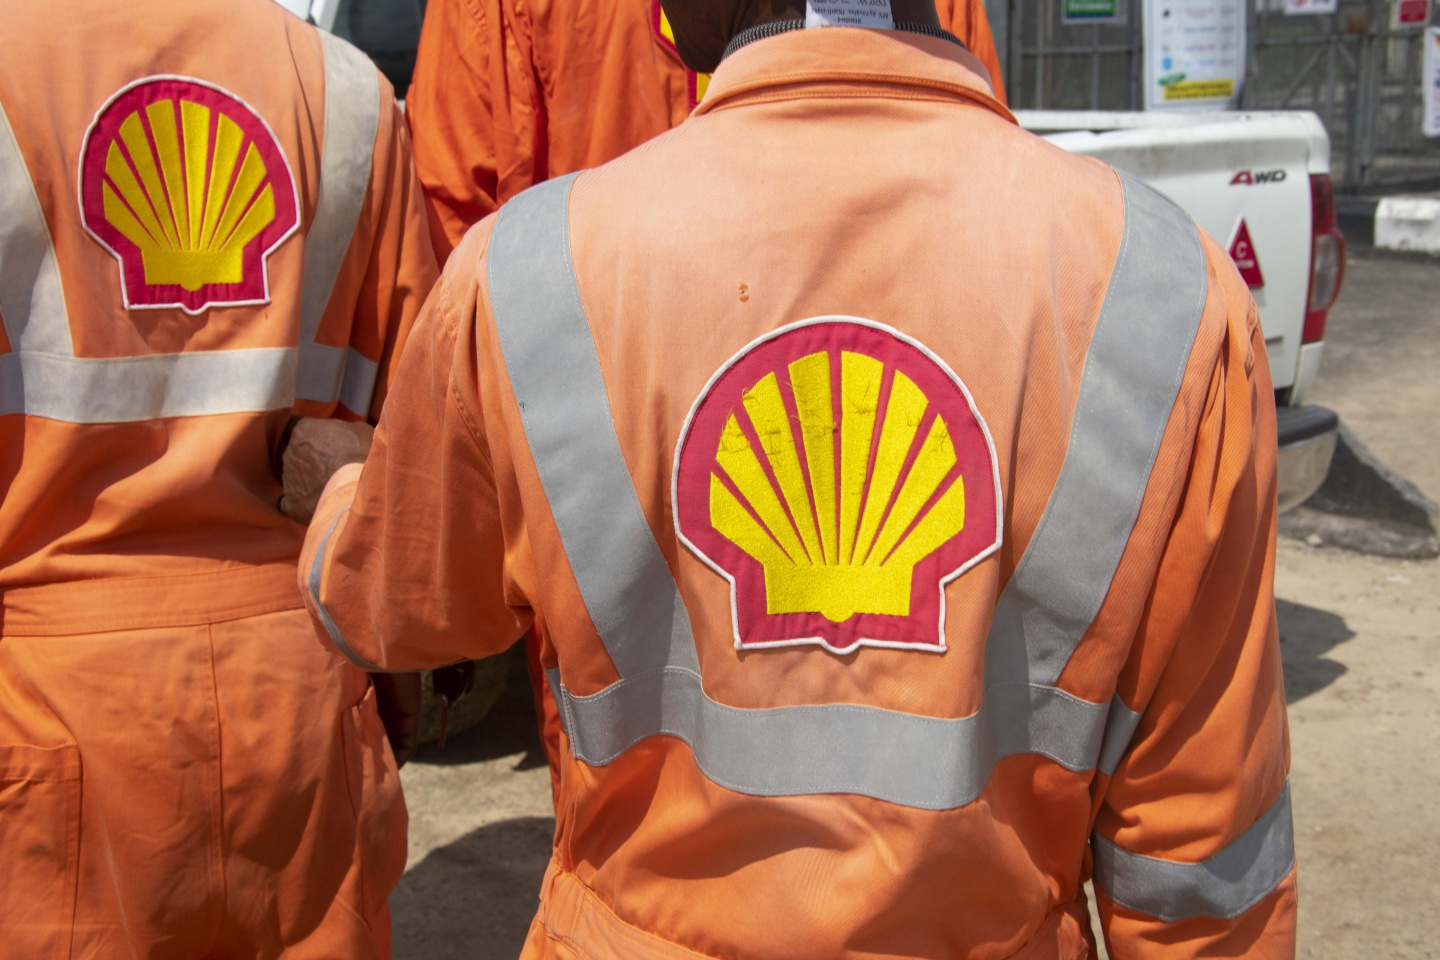 IndustriALL investigation uncovers exploitation of Shell